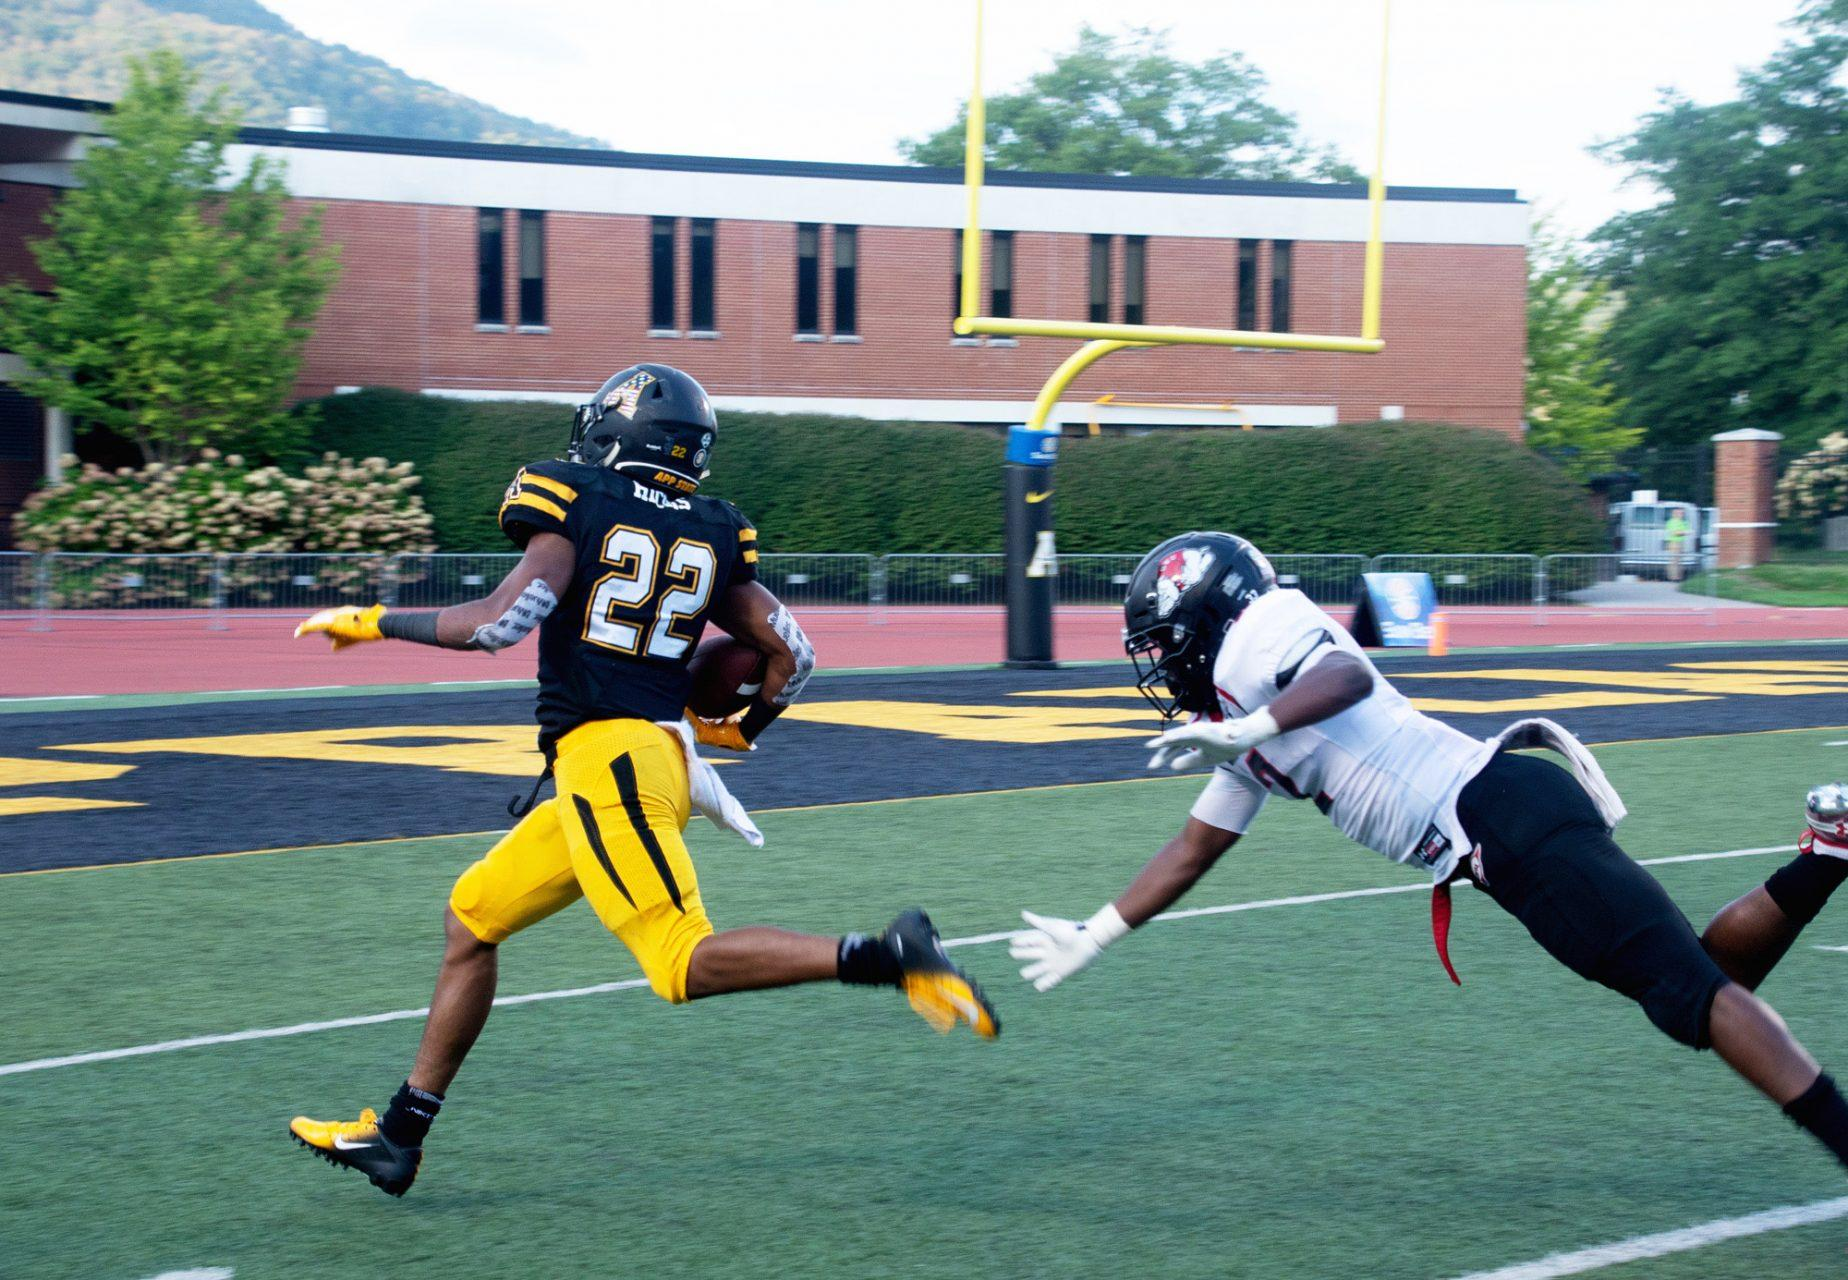 Redshirt freshman running back D'Andre Hicks breaks free for a 73-yard touchdown against Garnder-Webb.